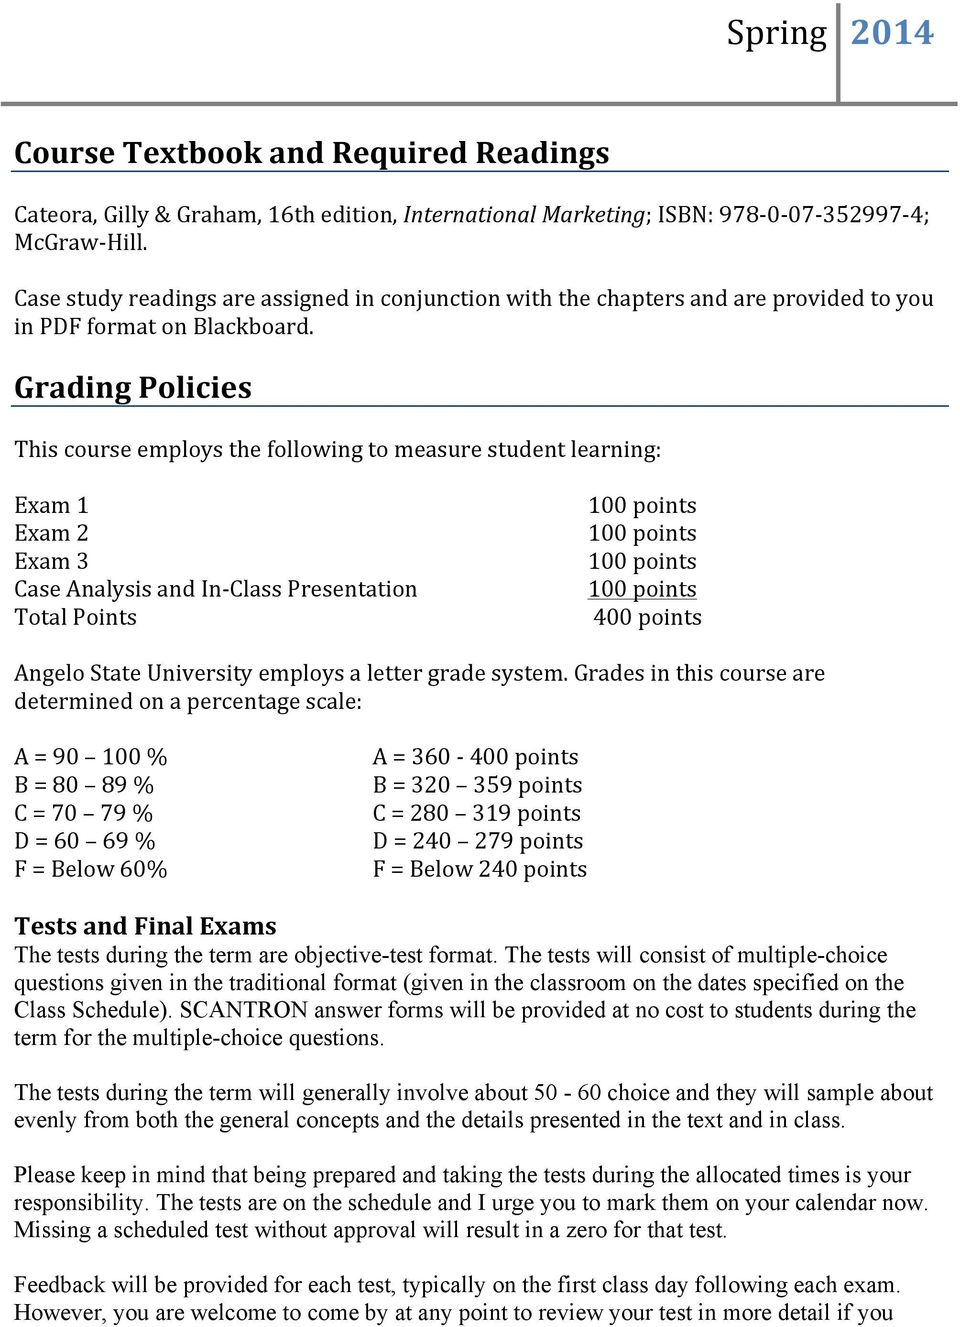 Grading Policies This course employs the following to measure student learning: Exam 1 Exam 2 Exam 3 Case Analysis and In- Class Presentation Total Points 100 points 100 points 100 points 100 points